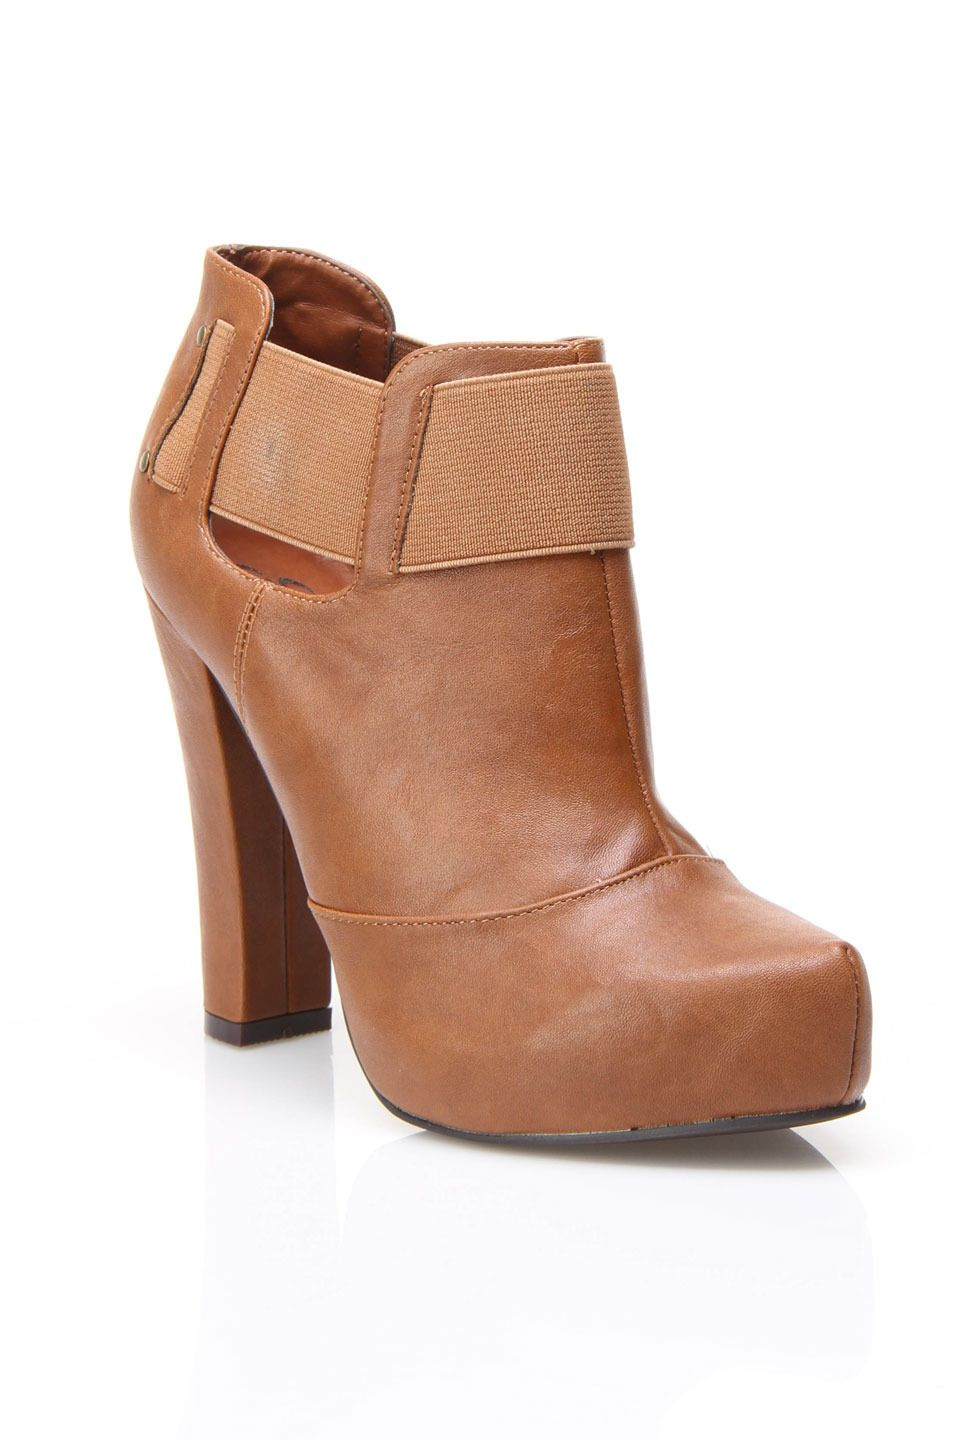 Strap Bootie In Brown.